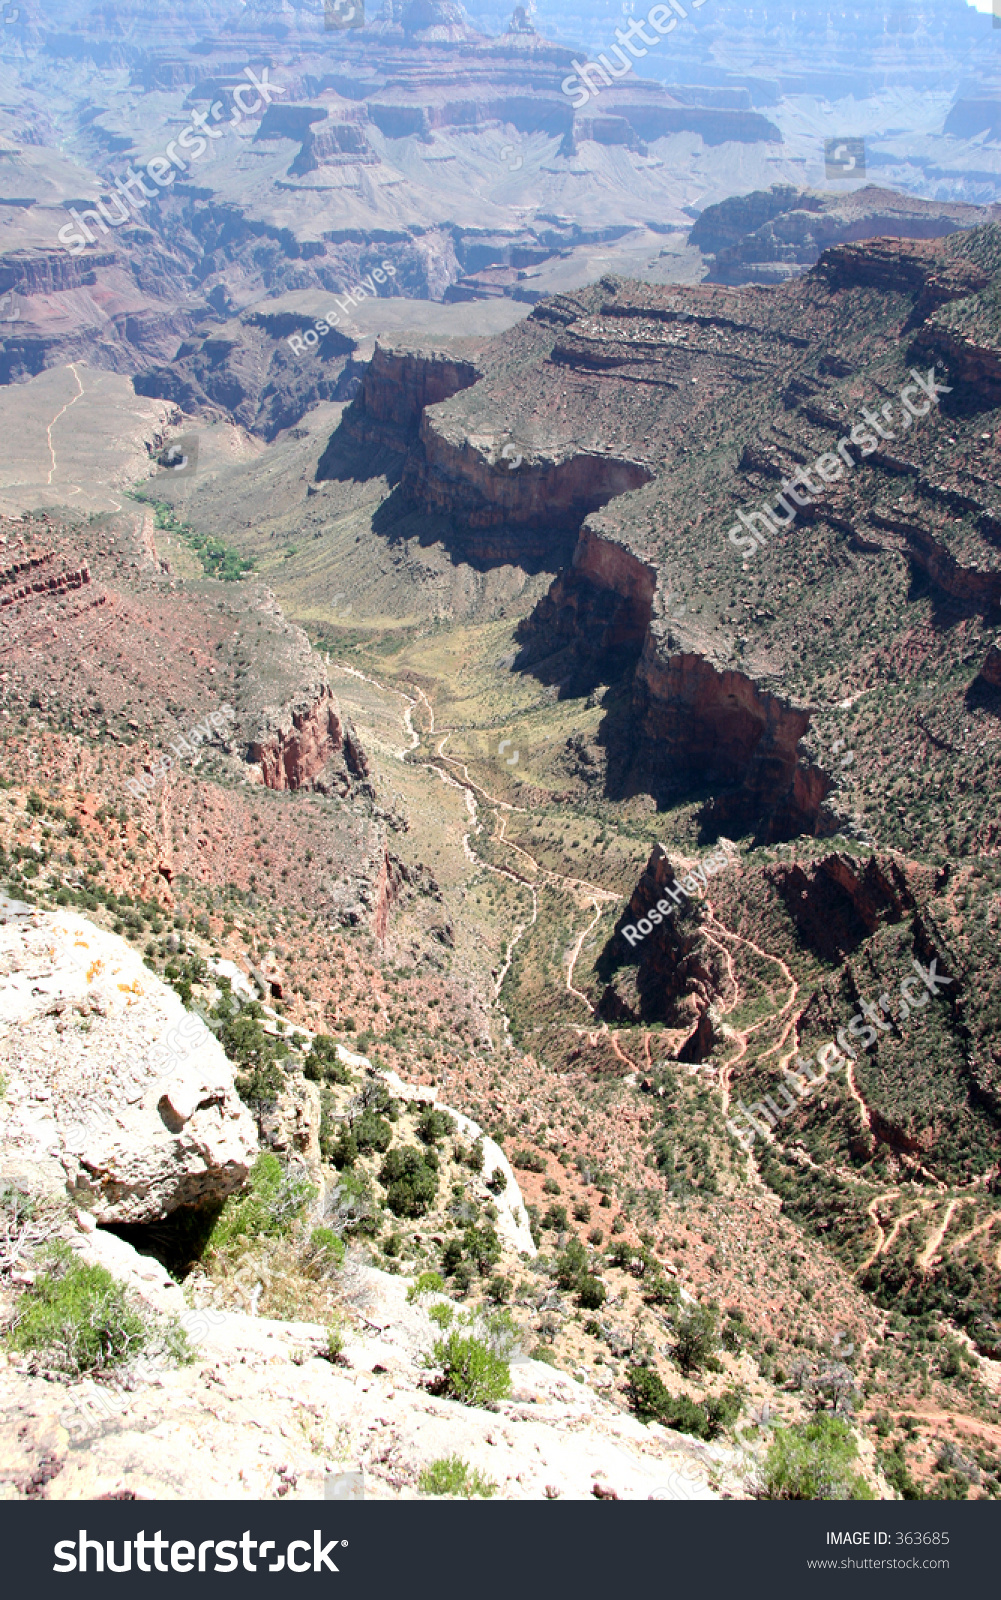 how to get to the bottom of the grand canyon